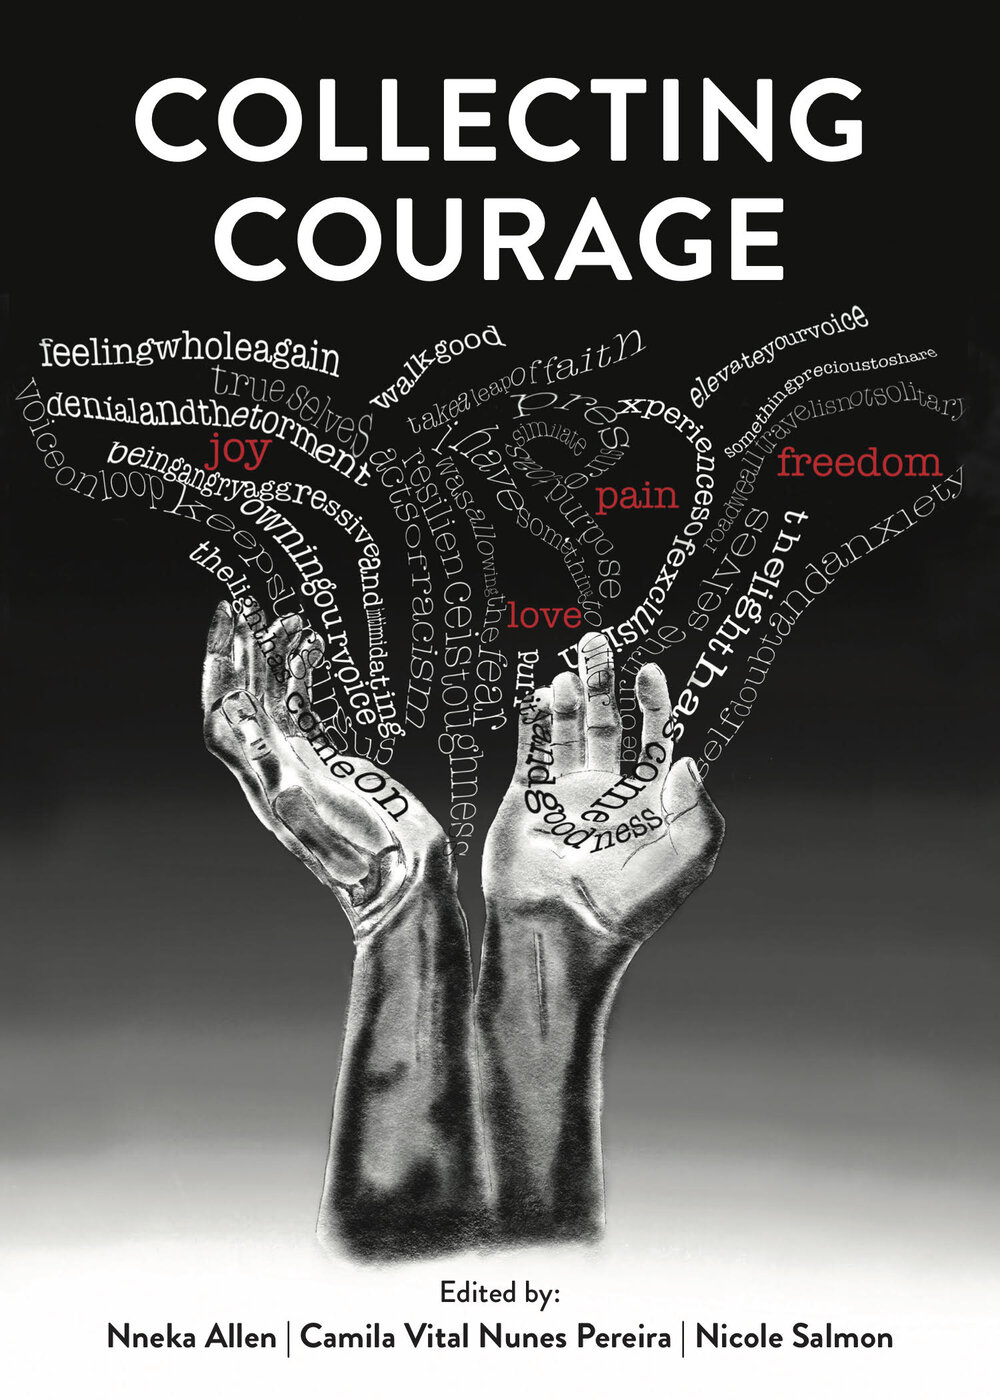 Collecting Courage